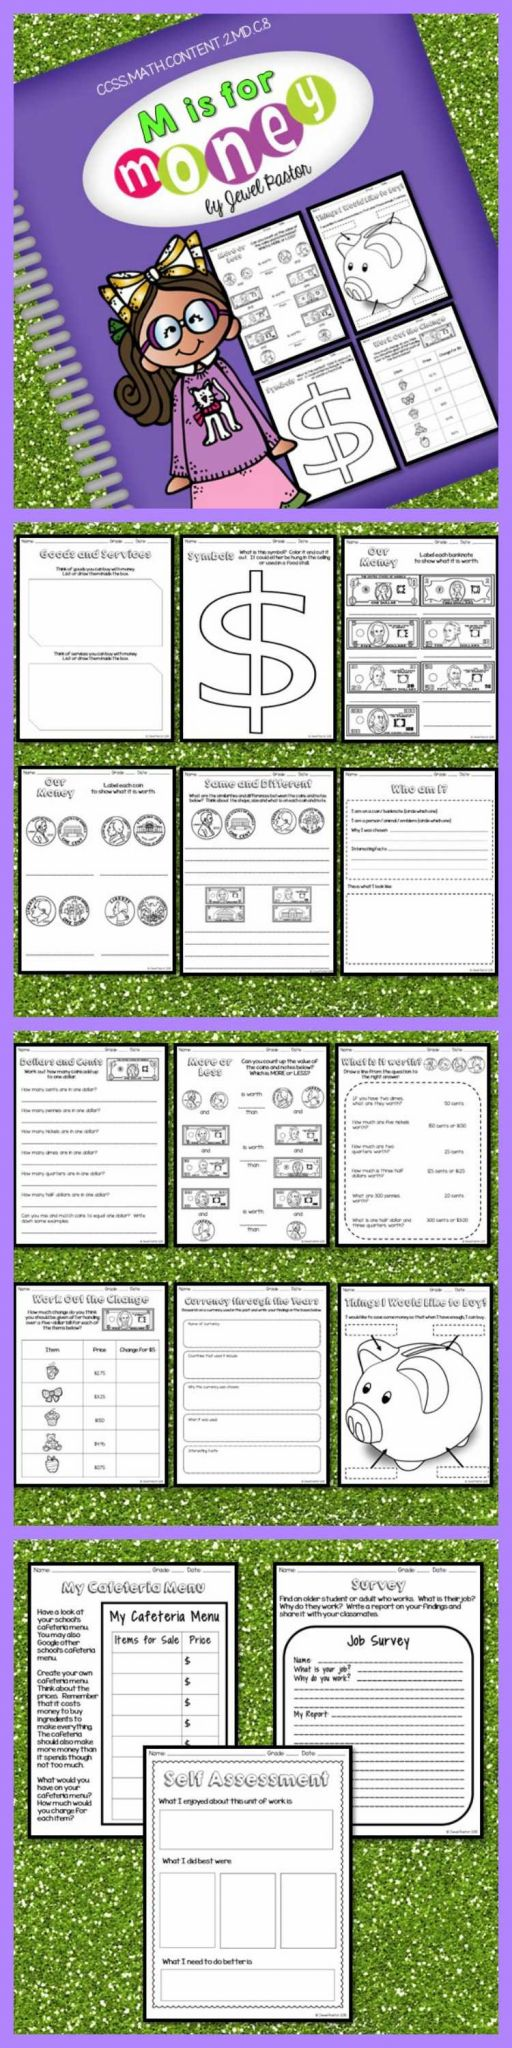 Math assessment Worksheets and Money Activities Money Worksheets